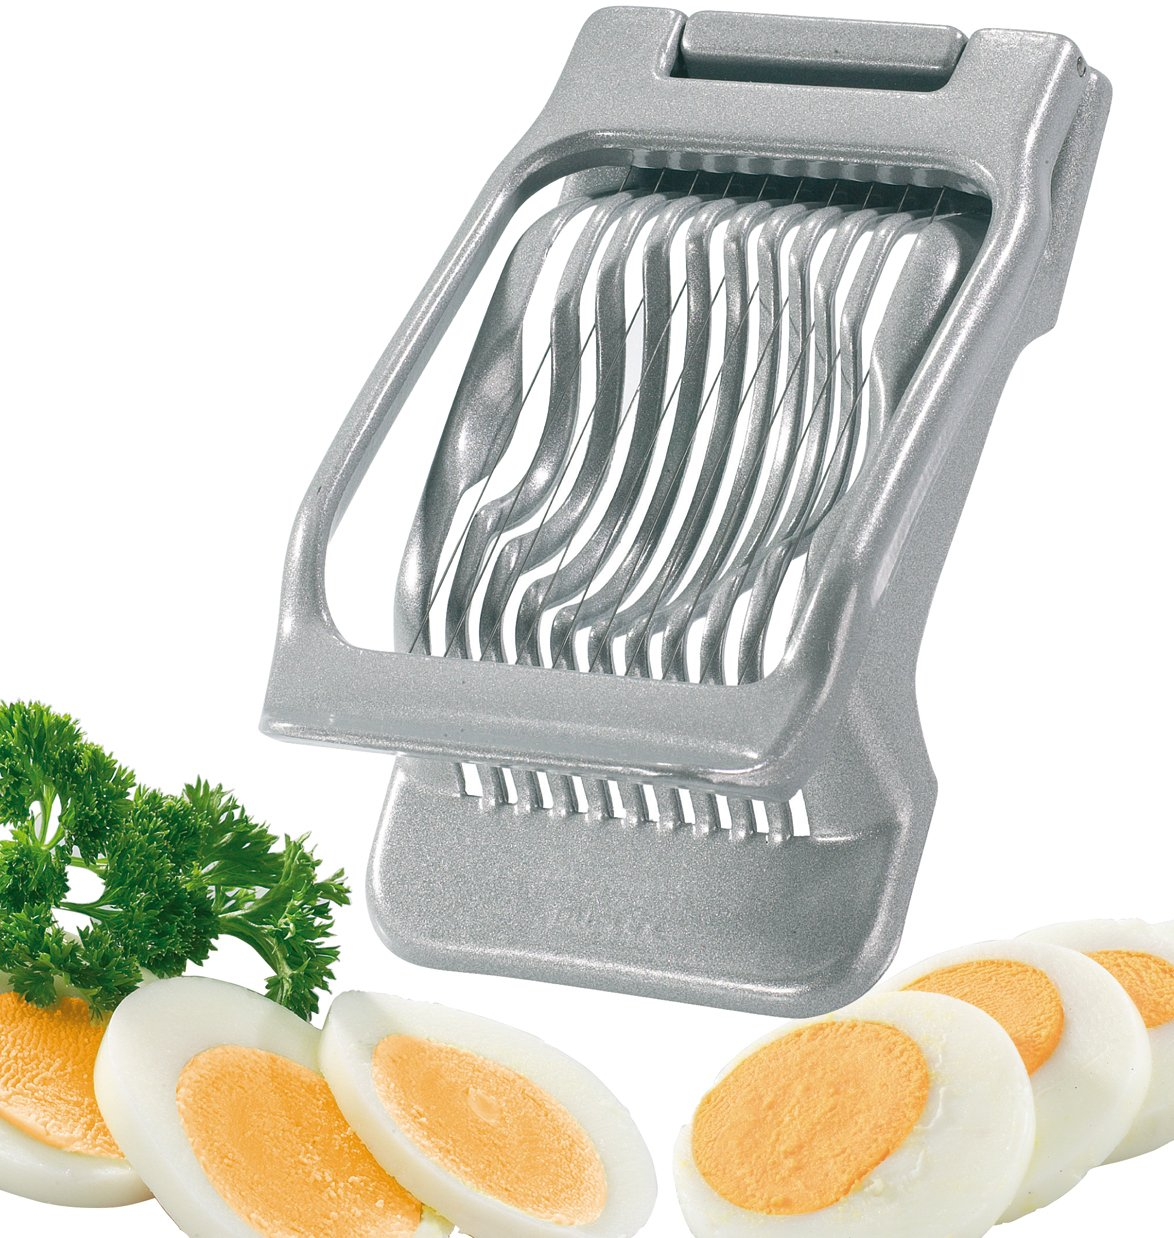 Westmark Germany Multipurpose Stainless Steel Wire Egg Slicer (Grey) by Westmark